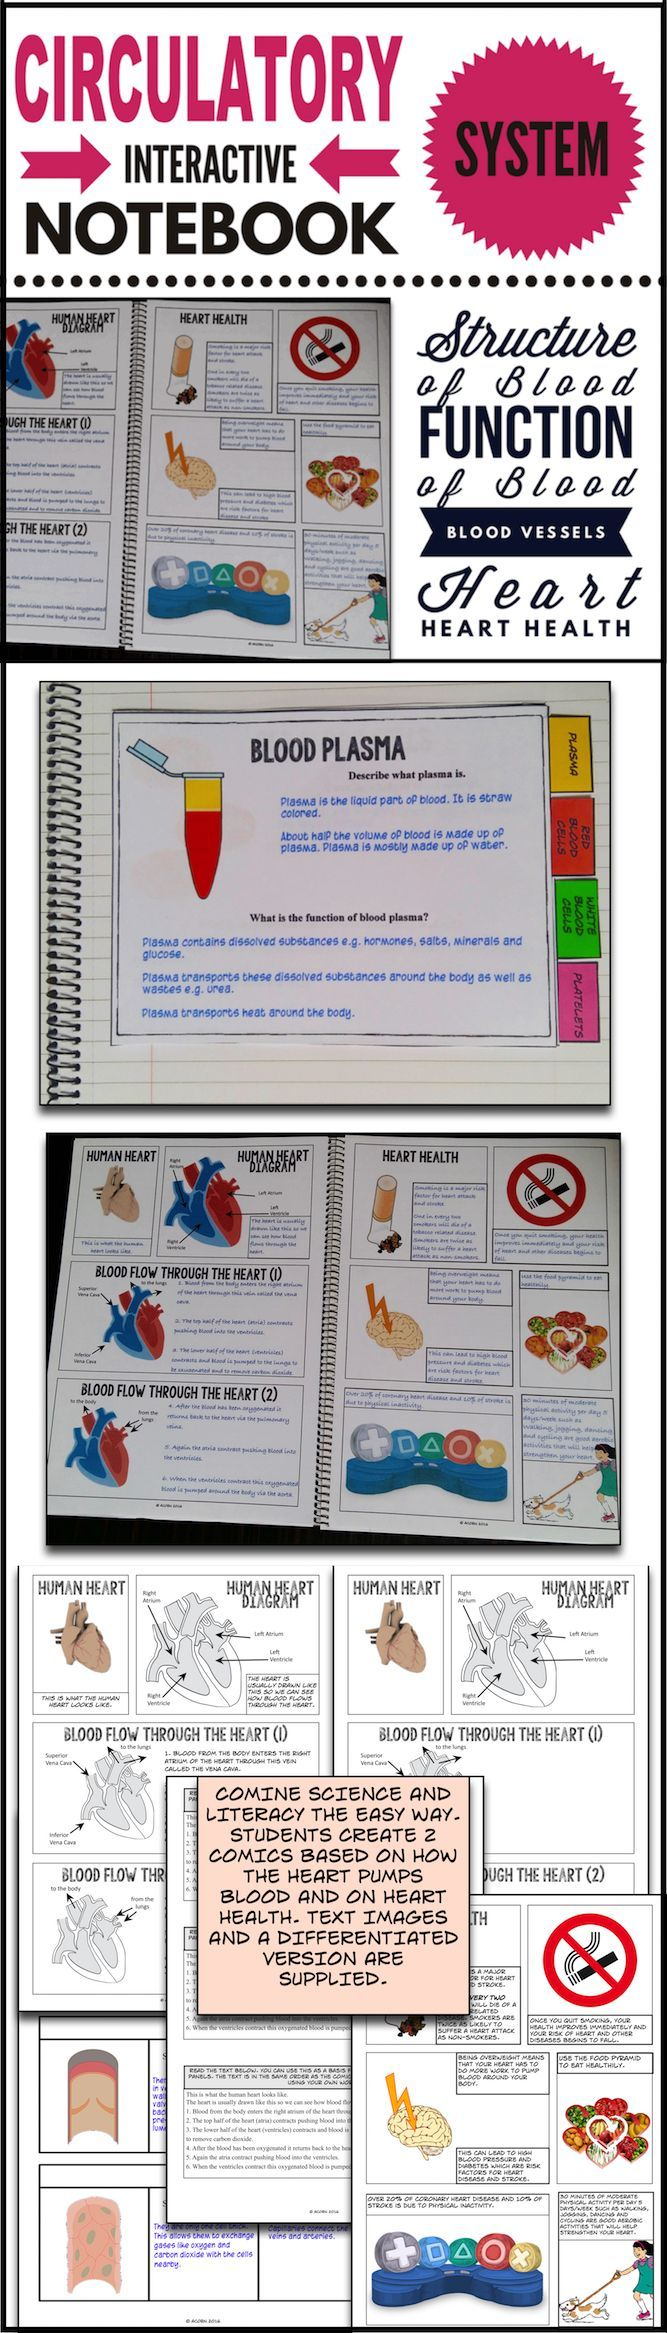 This differentiated Circulatory System Interactive Notebook has comics, activities, diagrams and foldables on all the components of the circulatory system including the heart, arteries, veins, capillaries. 2 comics on how the heart pumps blood and heart health are included.